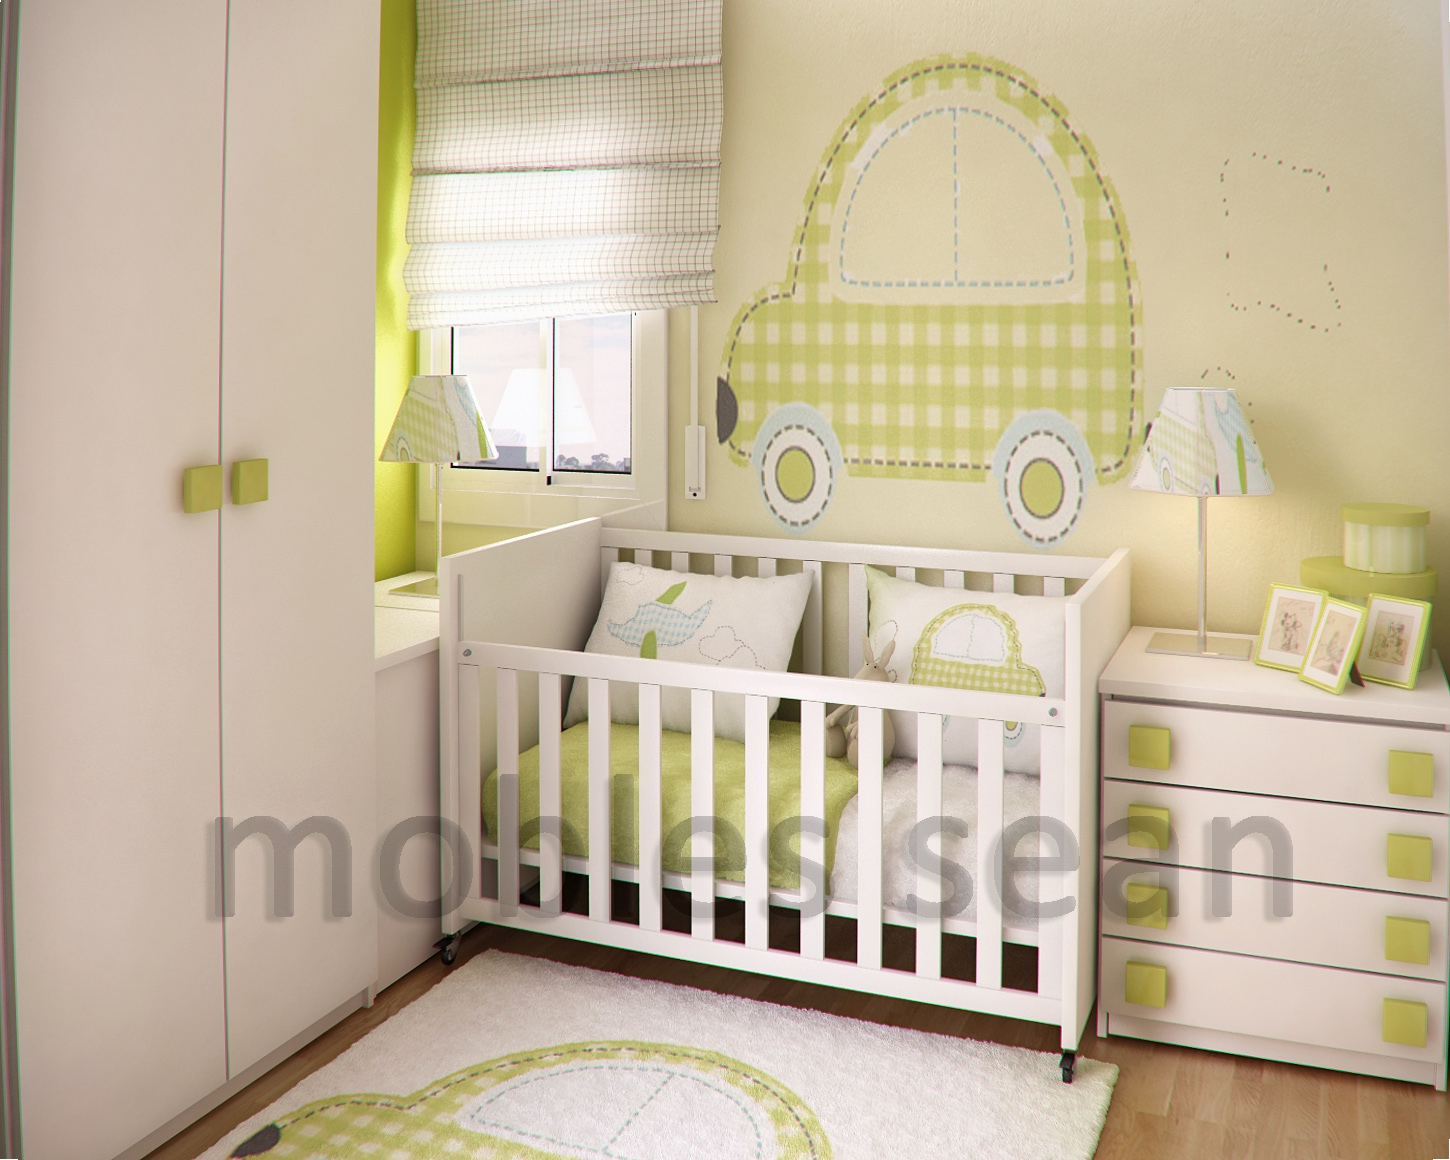 Space-Saving Designs for Small Kids' Rooms